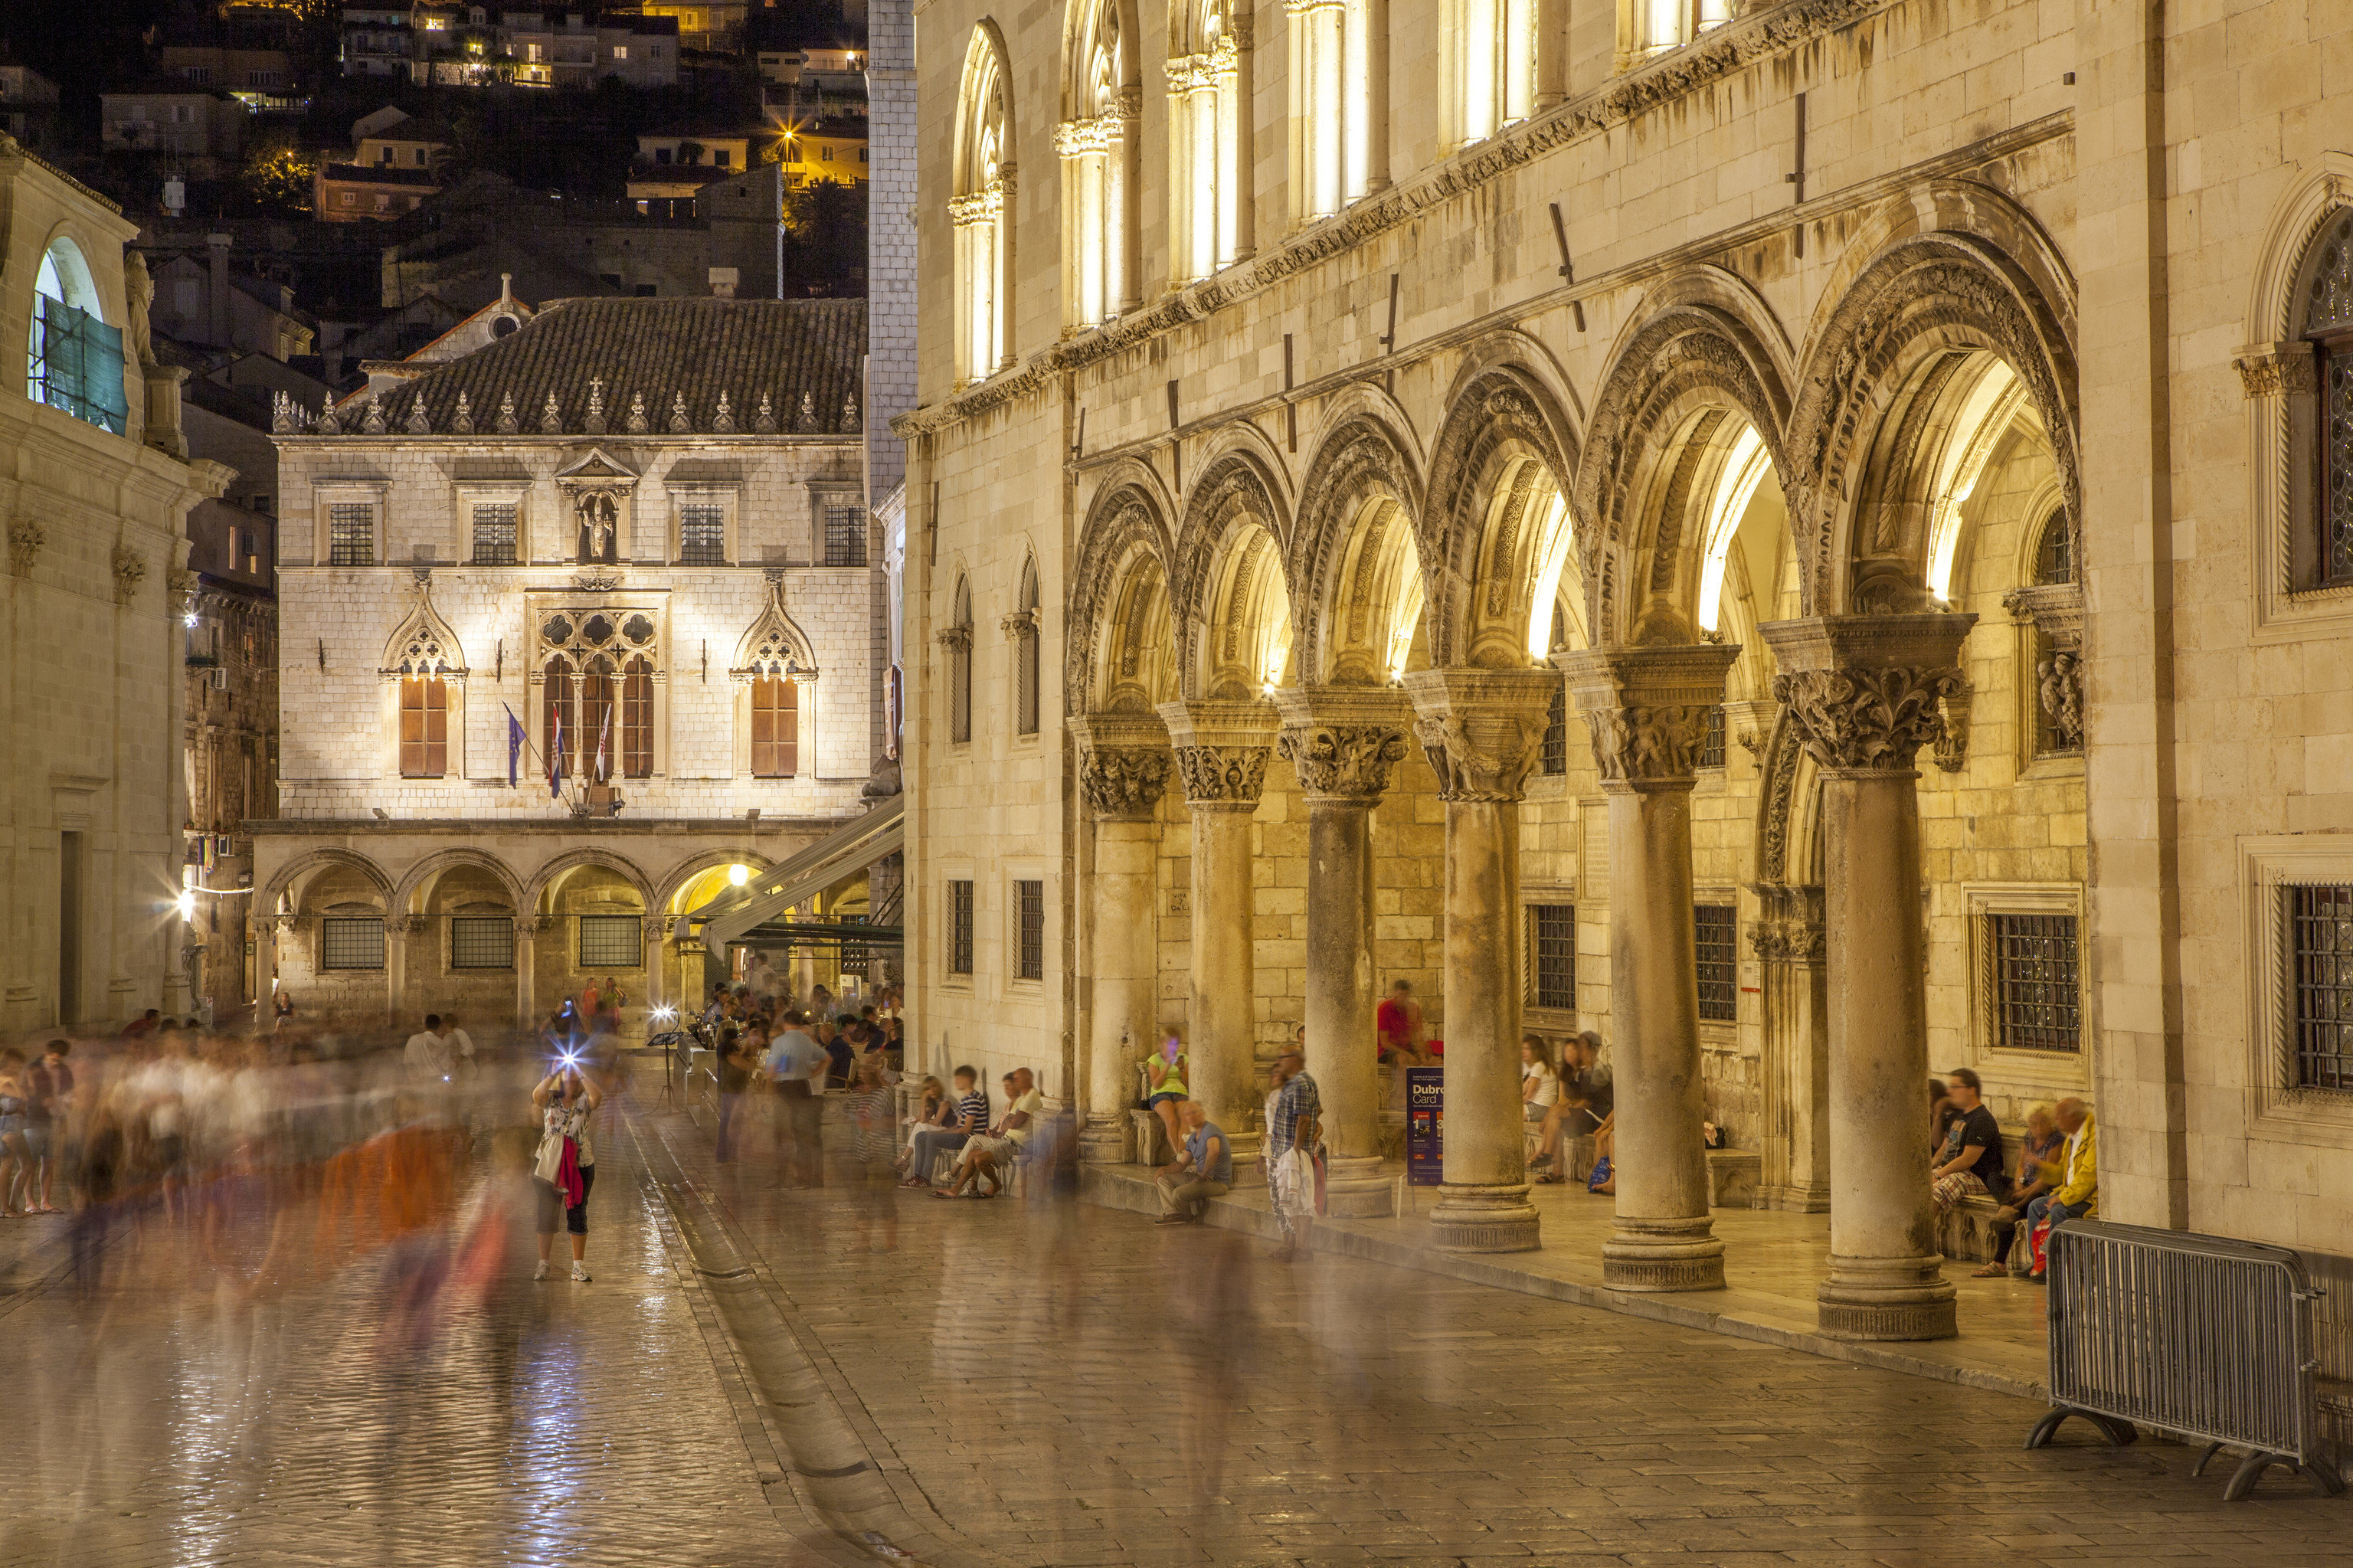 Trip Ideas building basilica tourism palace place of worship ancient history cathedral Church plaza ancient rome arcade arch several colonnade